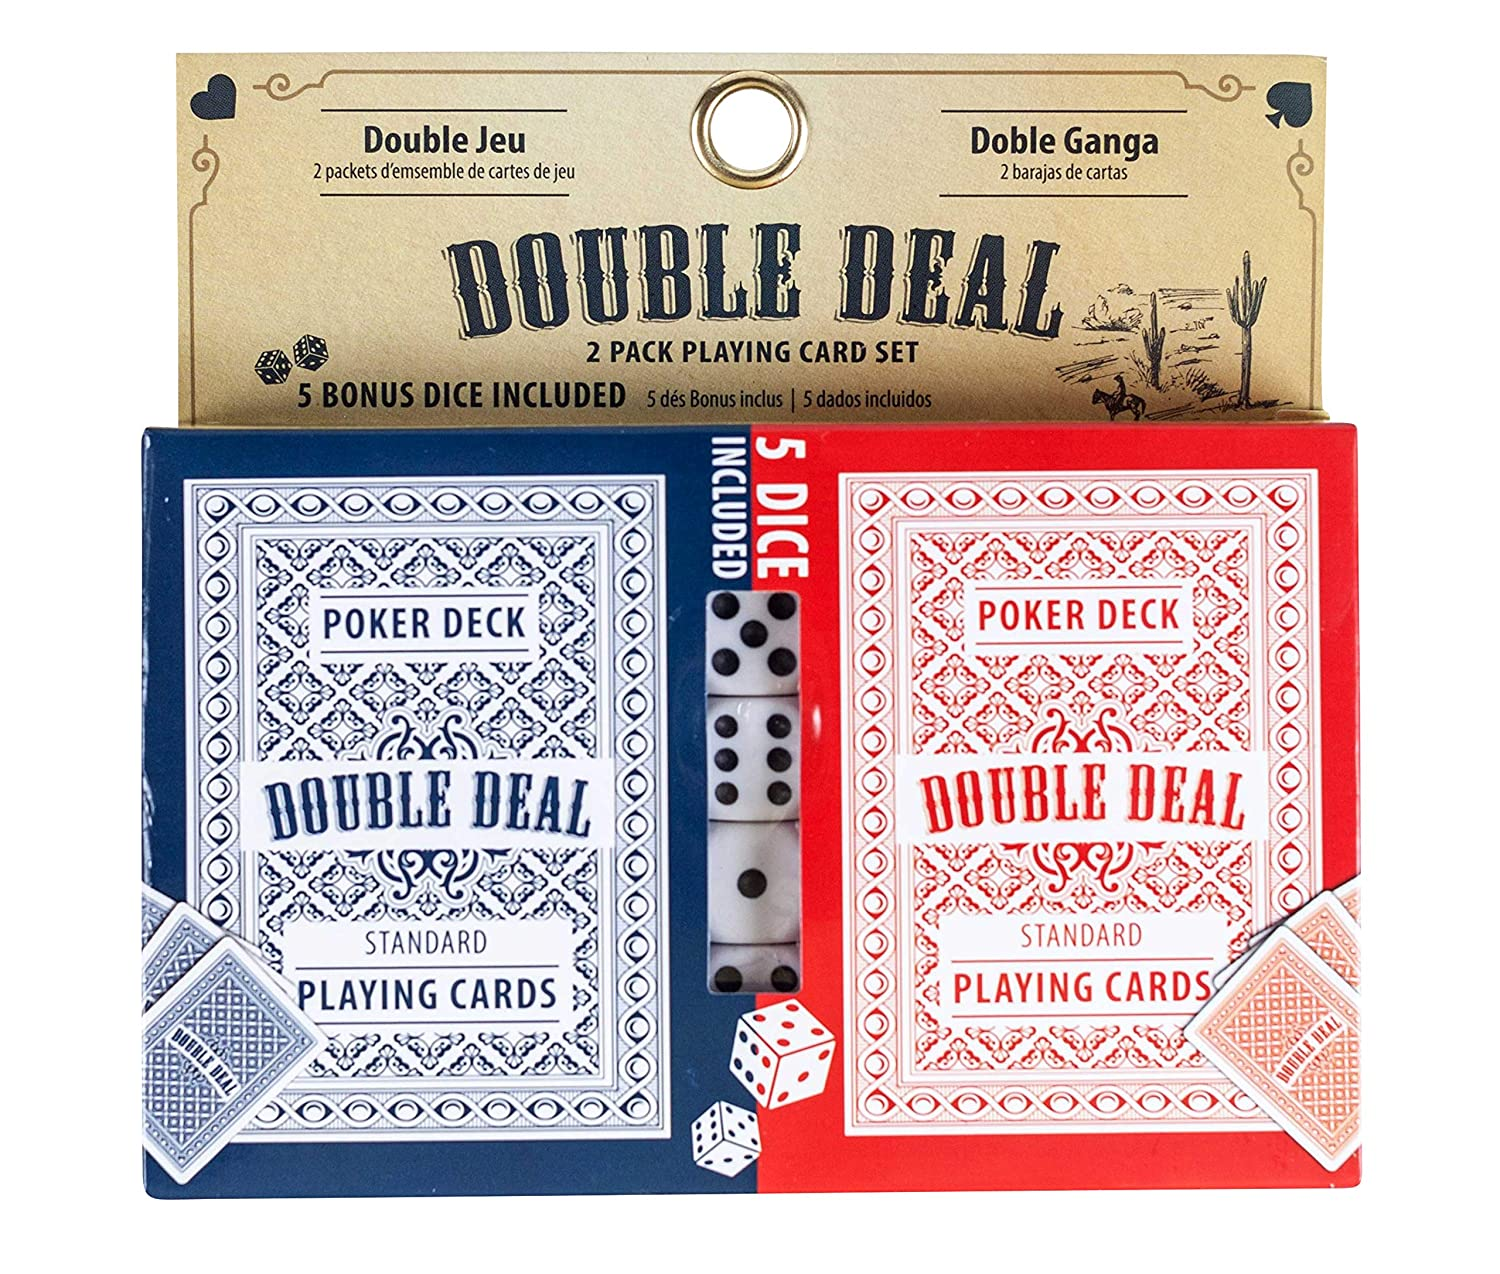 Jacent Double Deal 2 Pack Playing Cards with Bonus 5 Dice - 1 Set